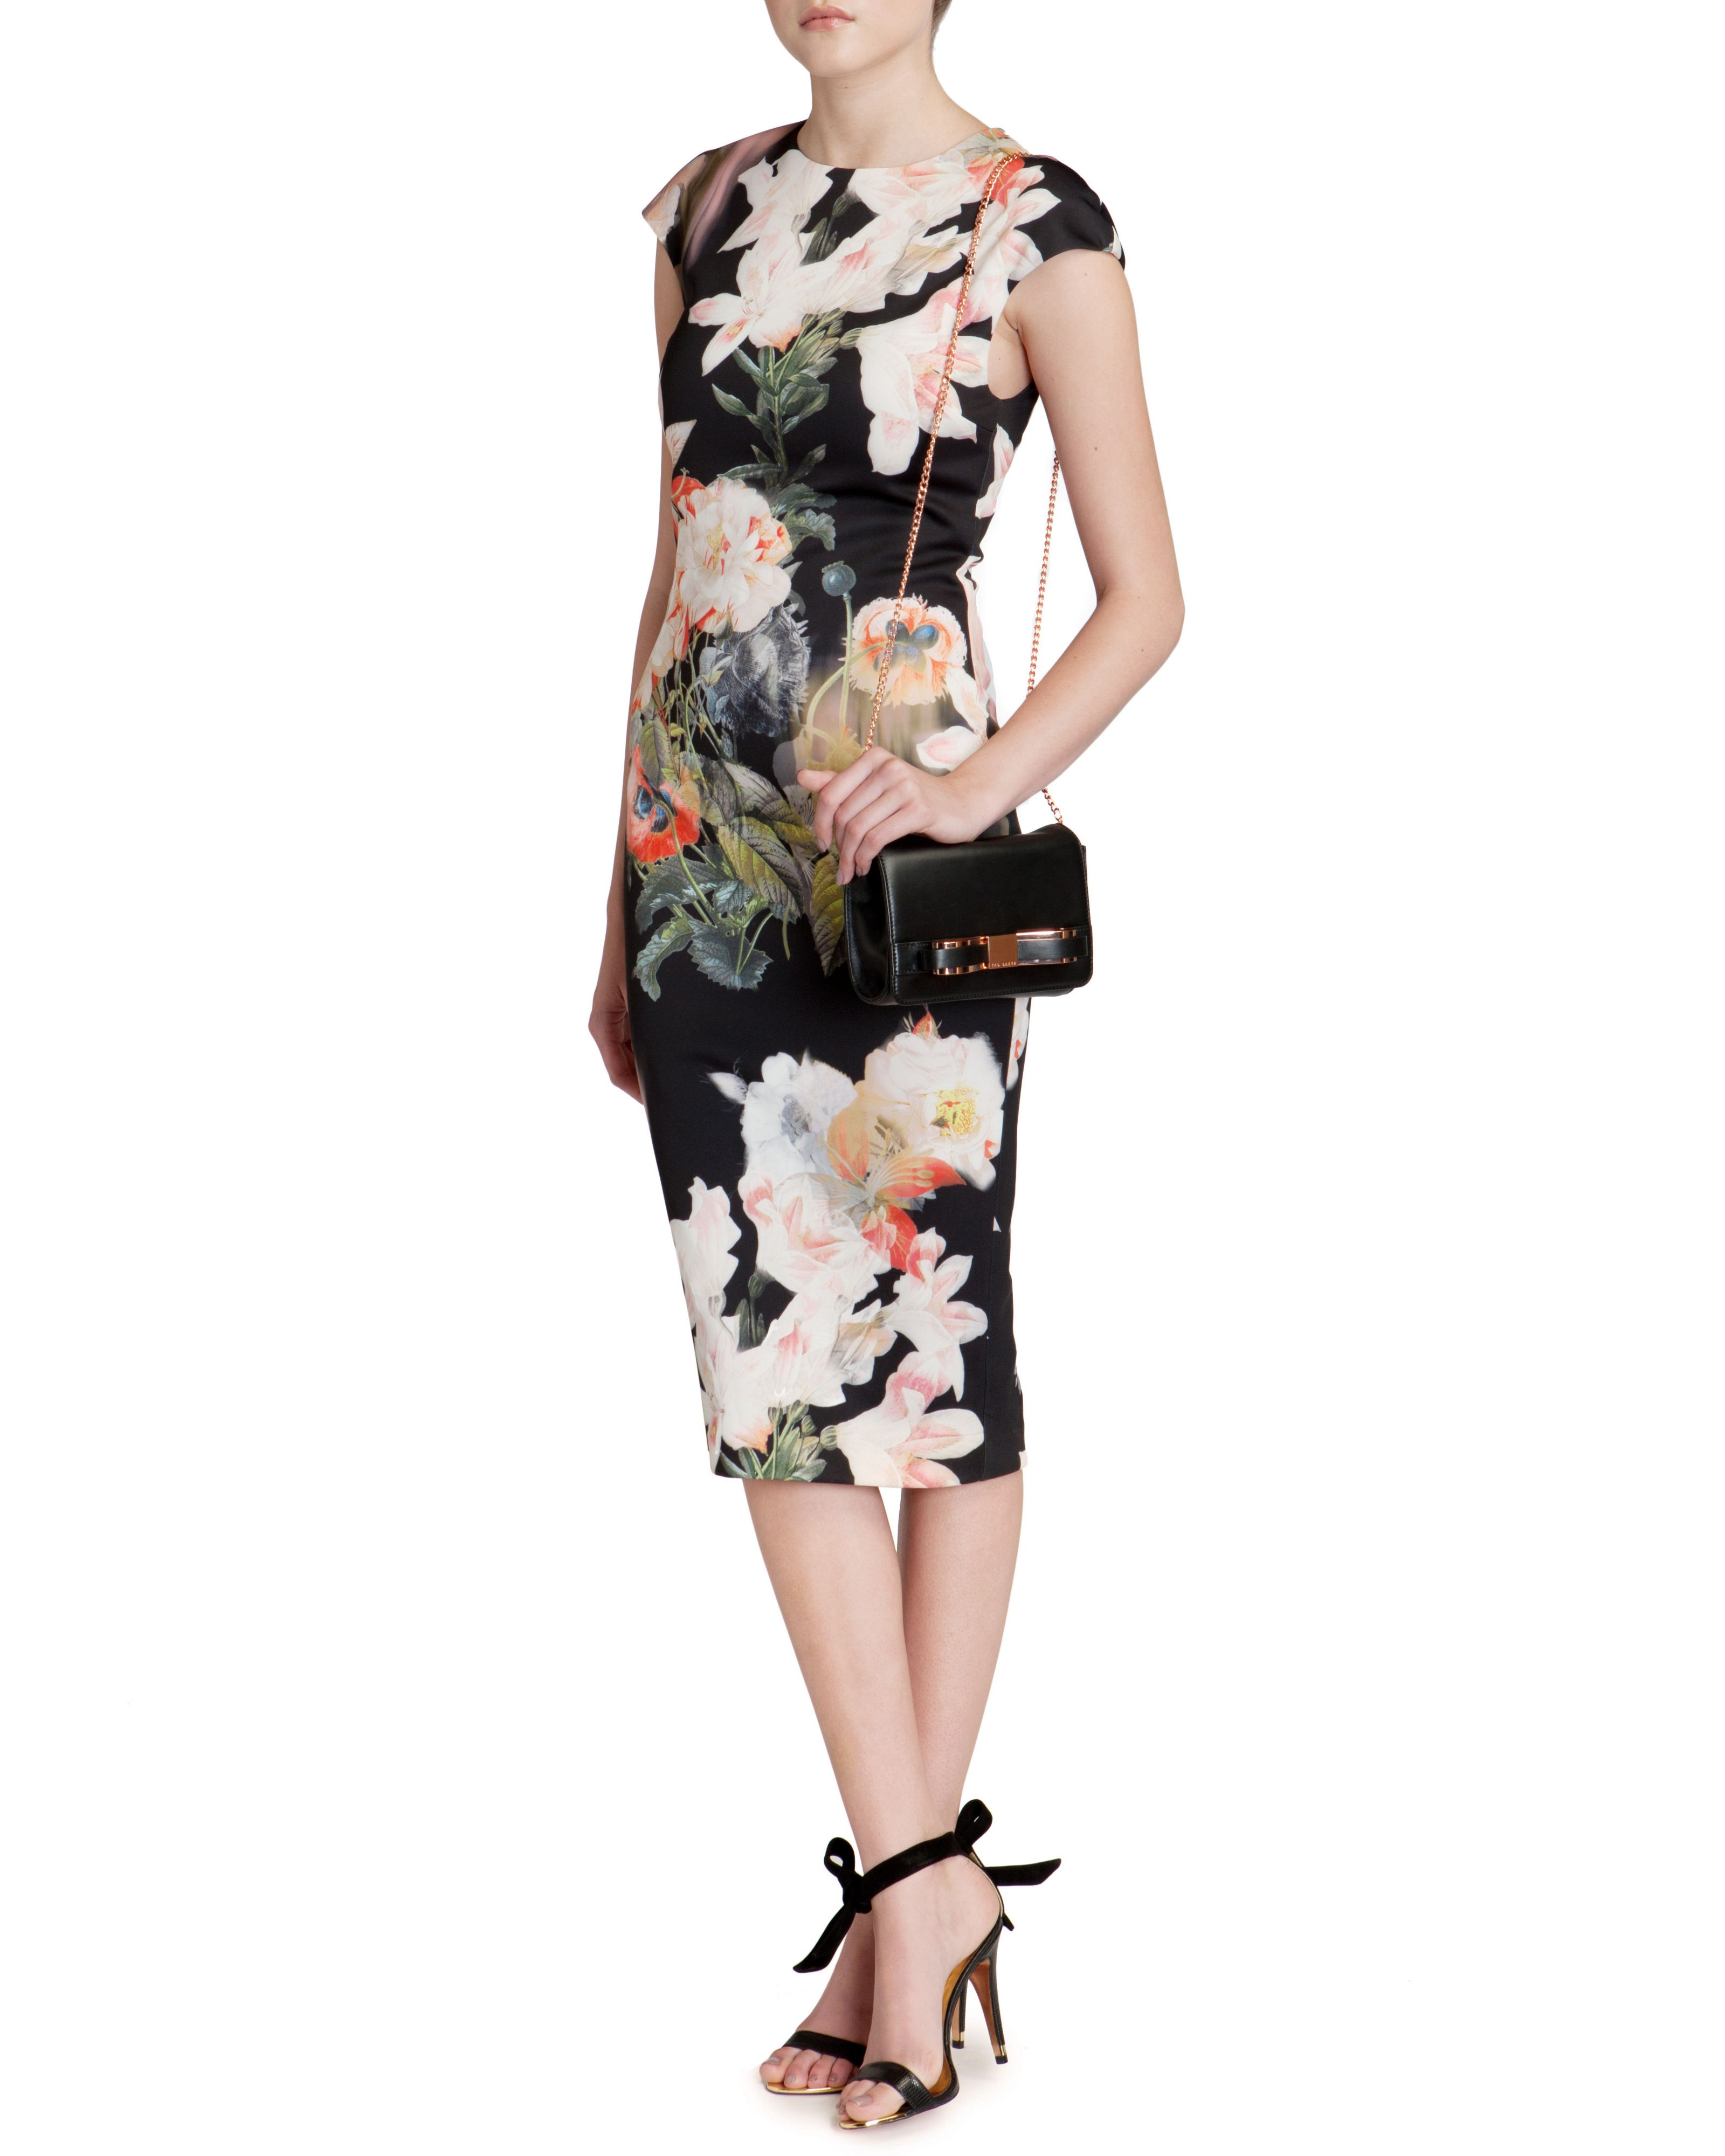 Candiss opulent bloom print dress